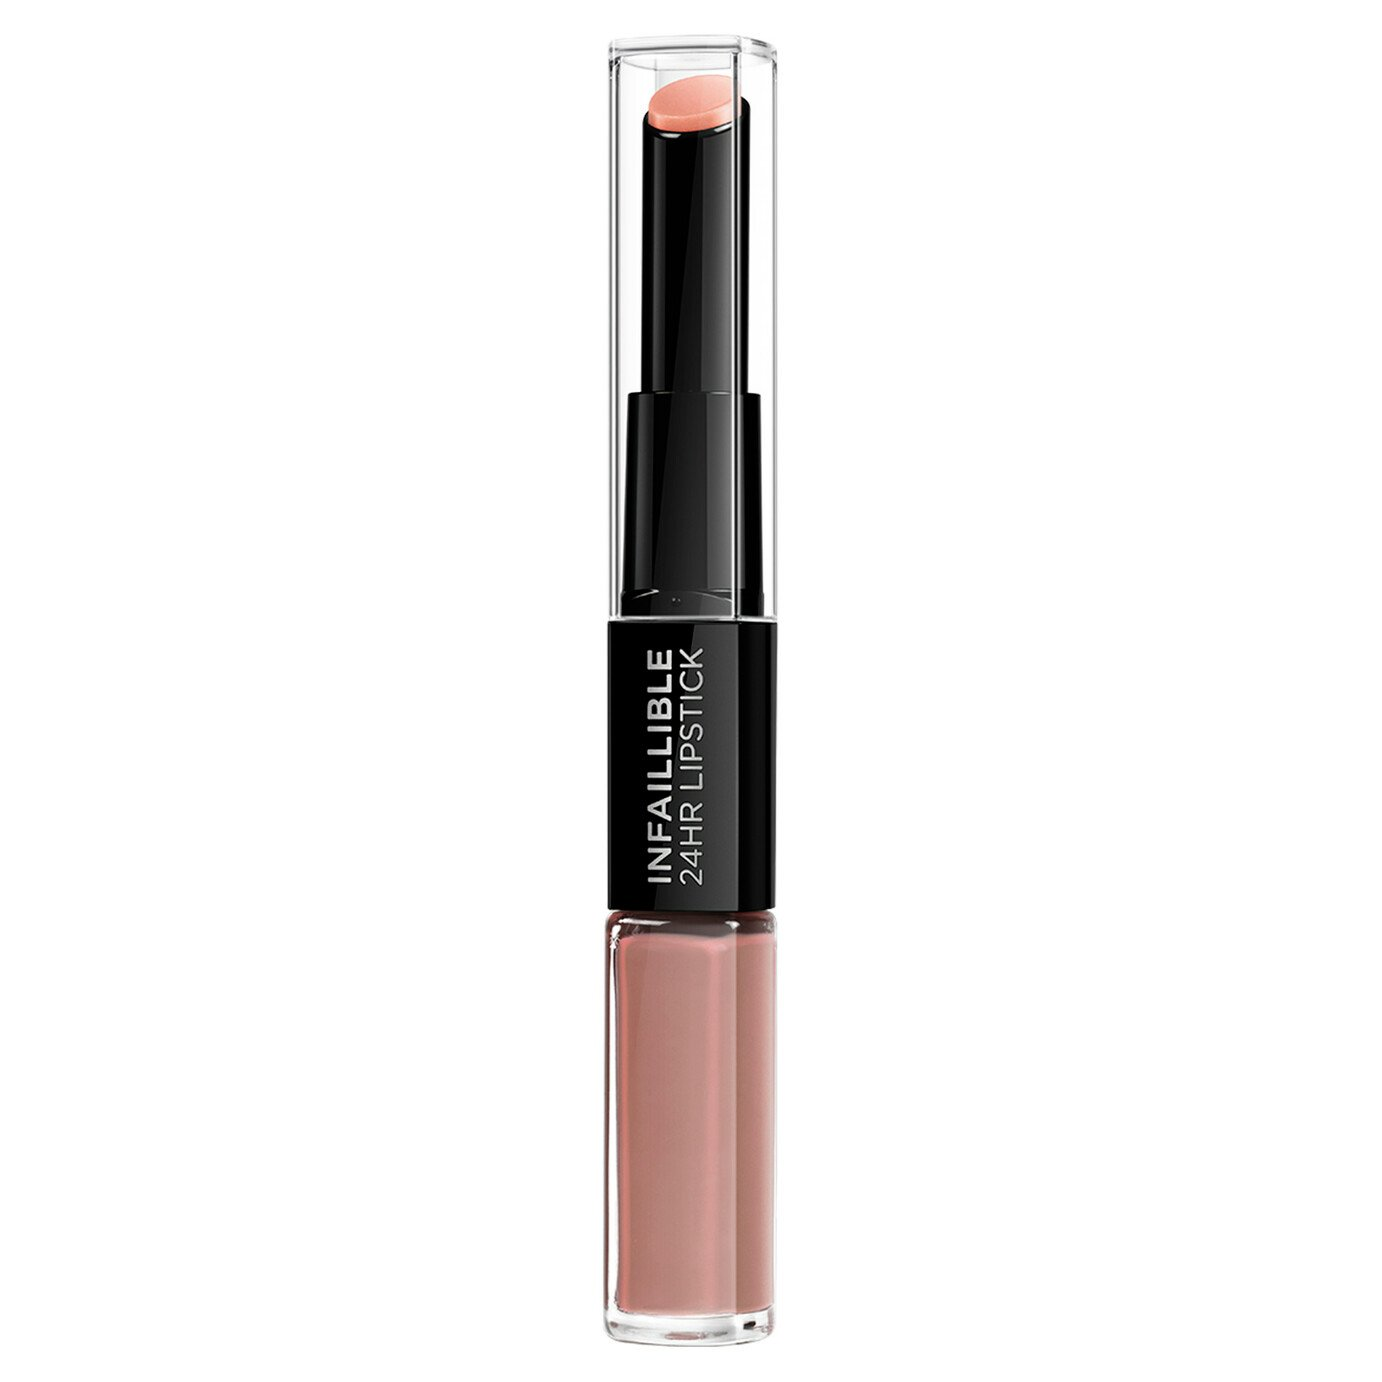 L'Oreal Paris Infallible 24HR Lipstick - Beige To Stay 116